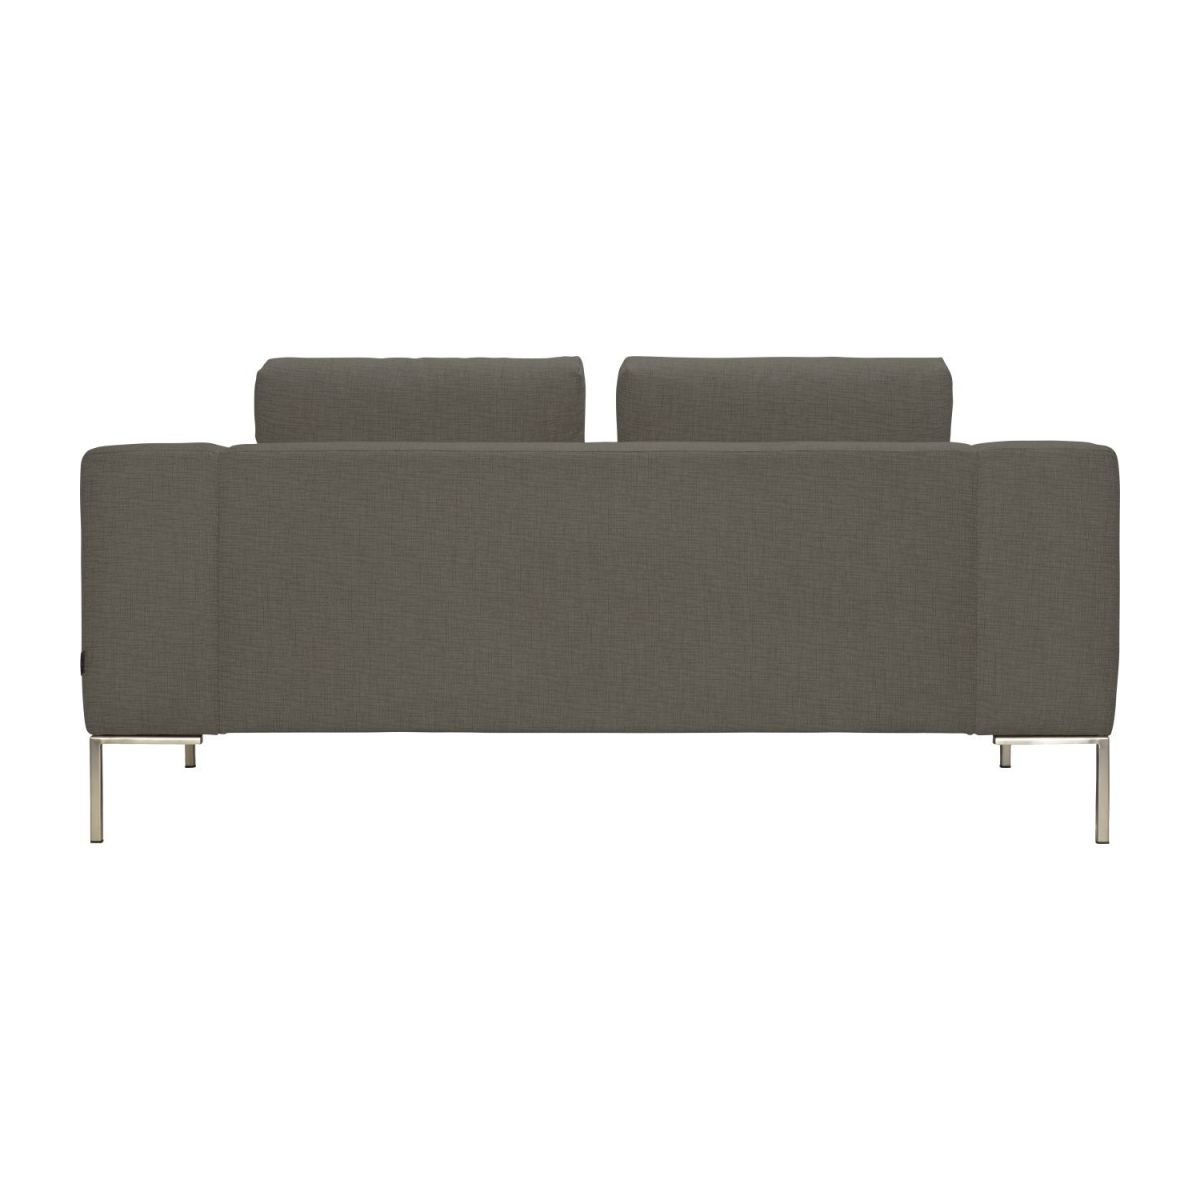 2 seater sofa in Ancio fabric, river rock n°4